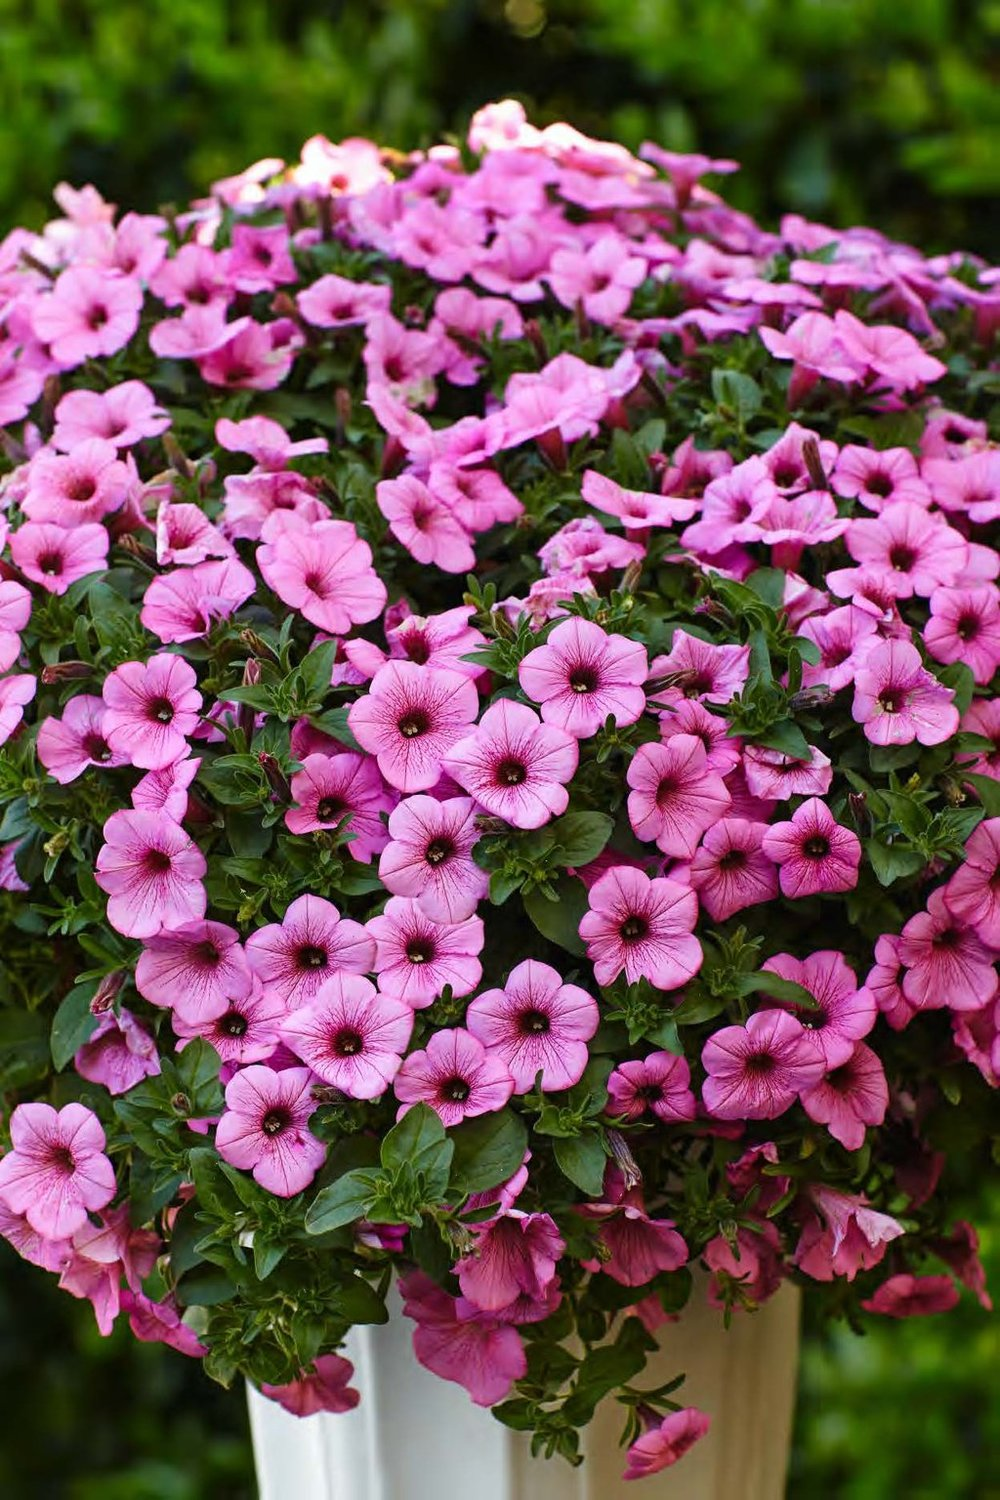 Supertunia® Flamingo™